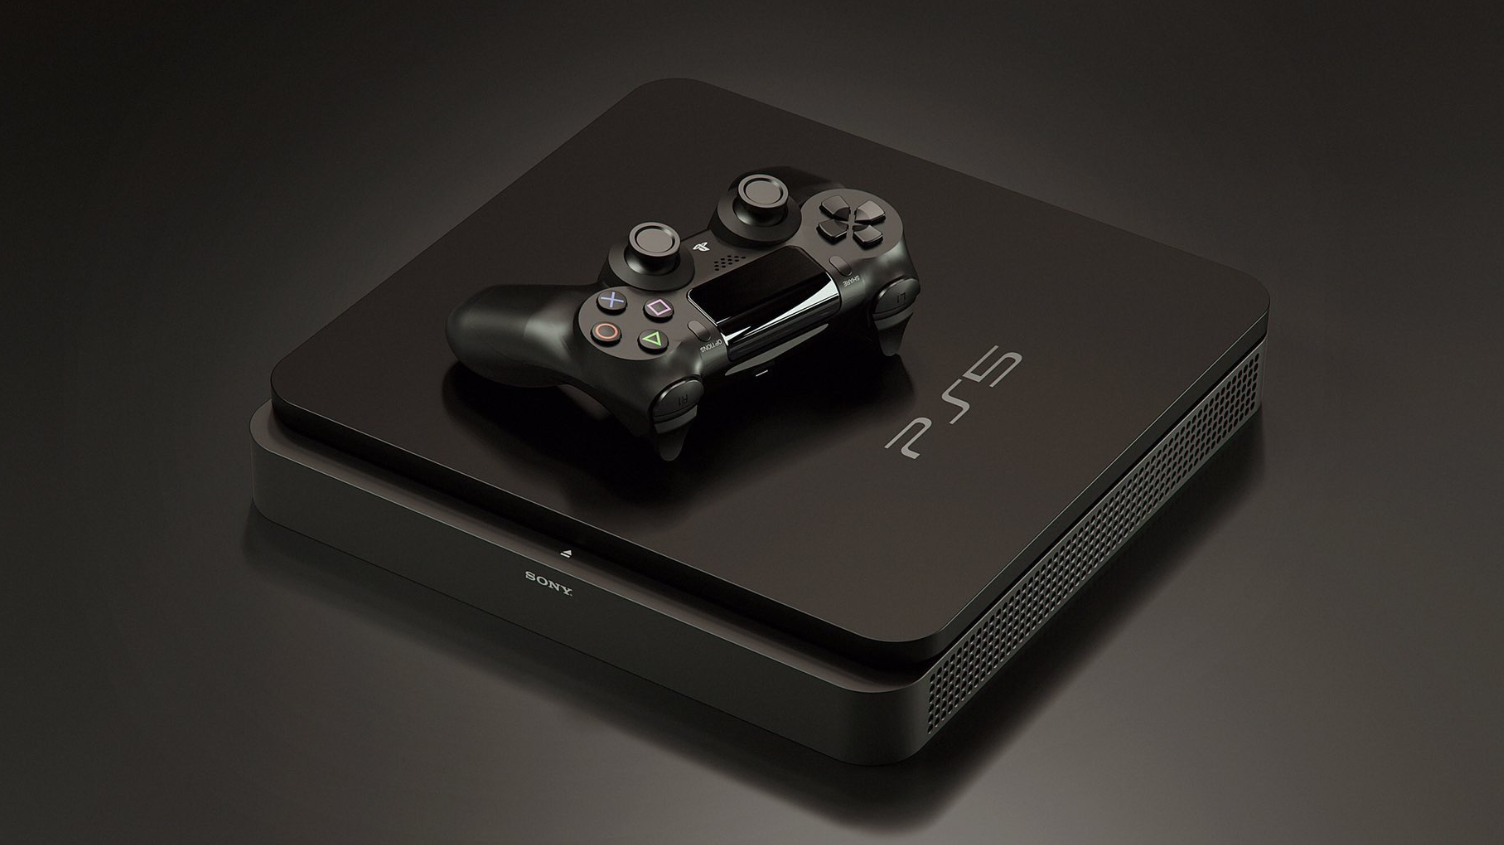 Rumors suggest Sony having PS5 price issues